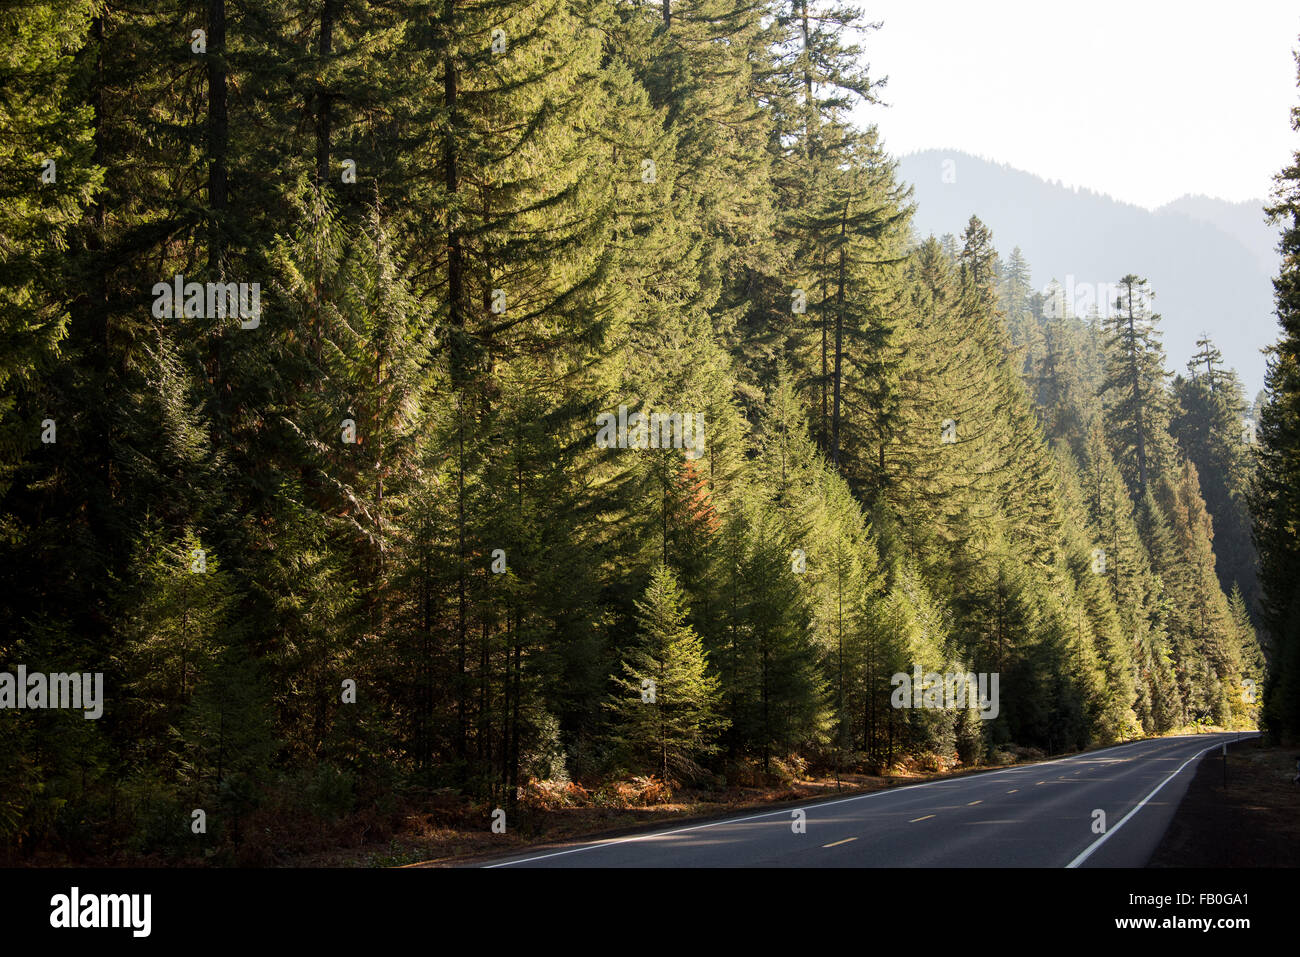 The empty McKenzie River Highway is lined with evergreen trees, part of the Willamette National Forest in Oregon. - Stock Image